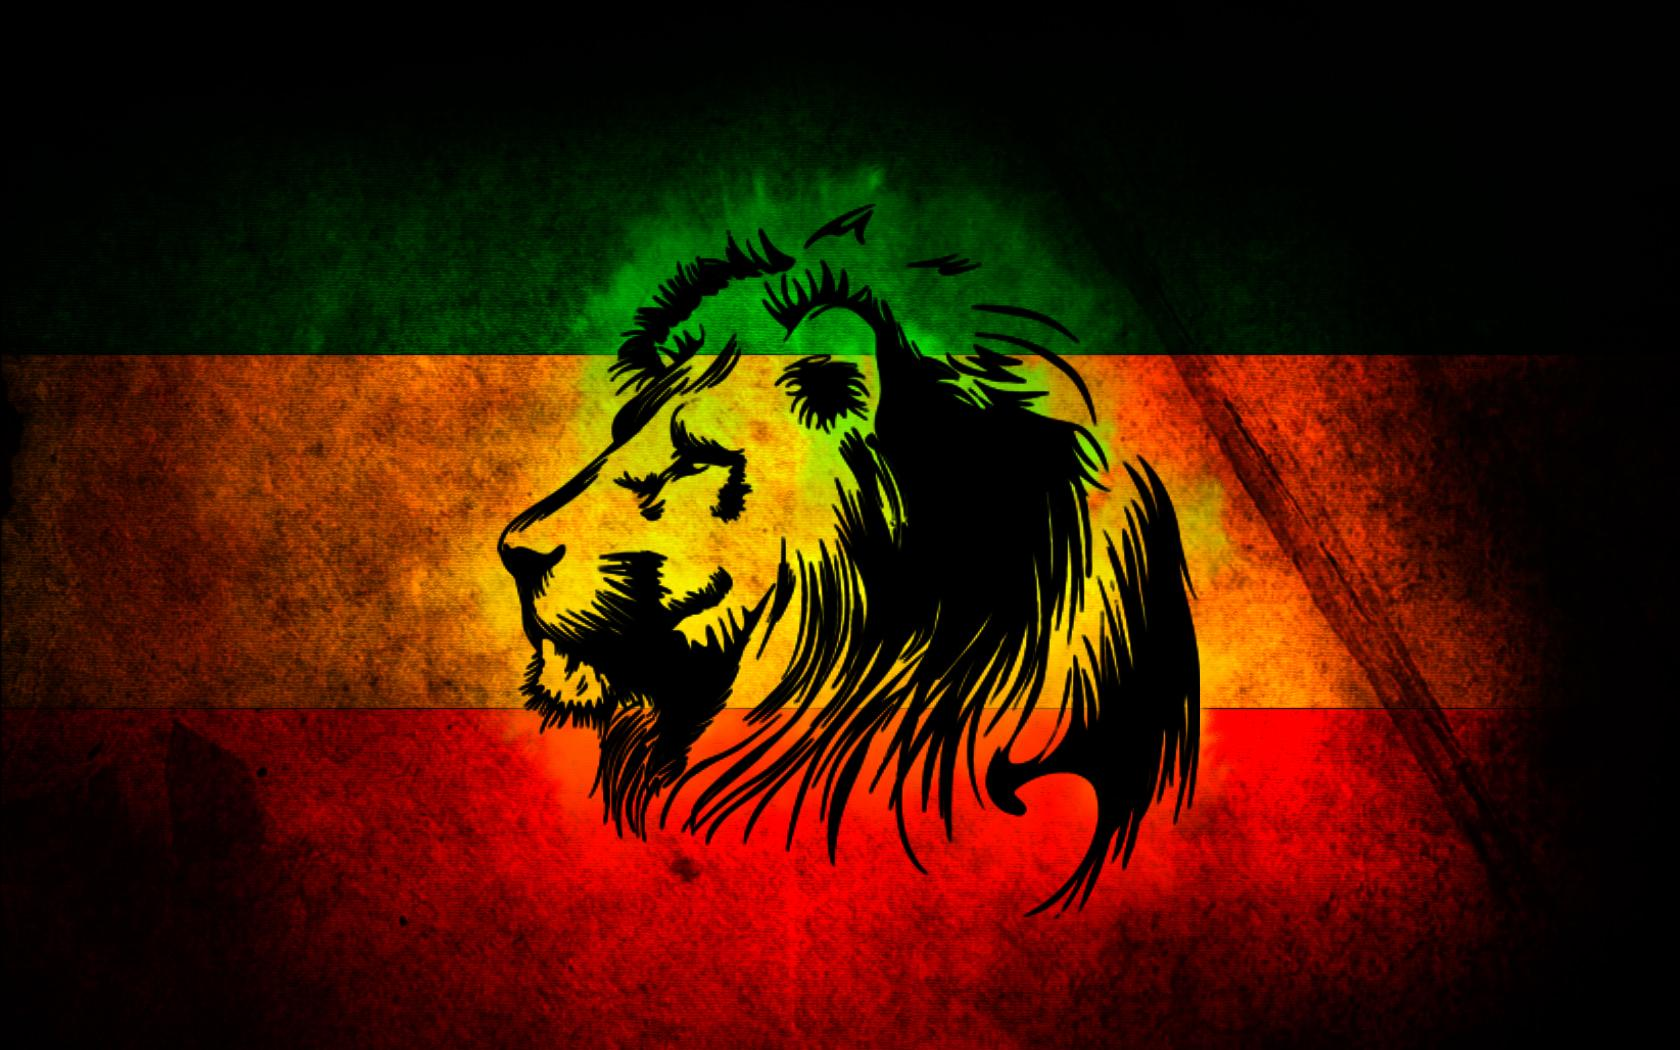 Group Of Lion Of Judah Wallpaper Layouts Backgrounds